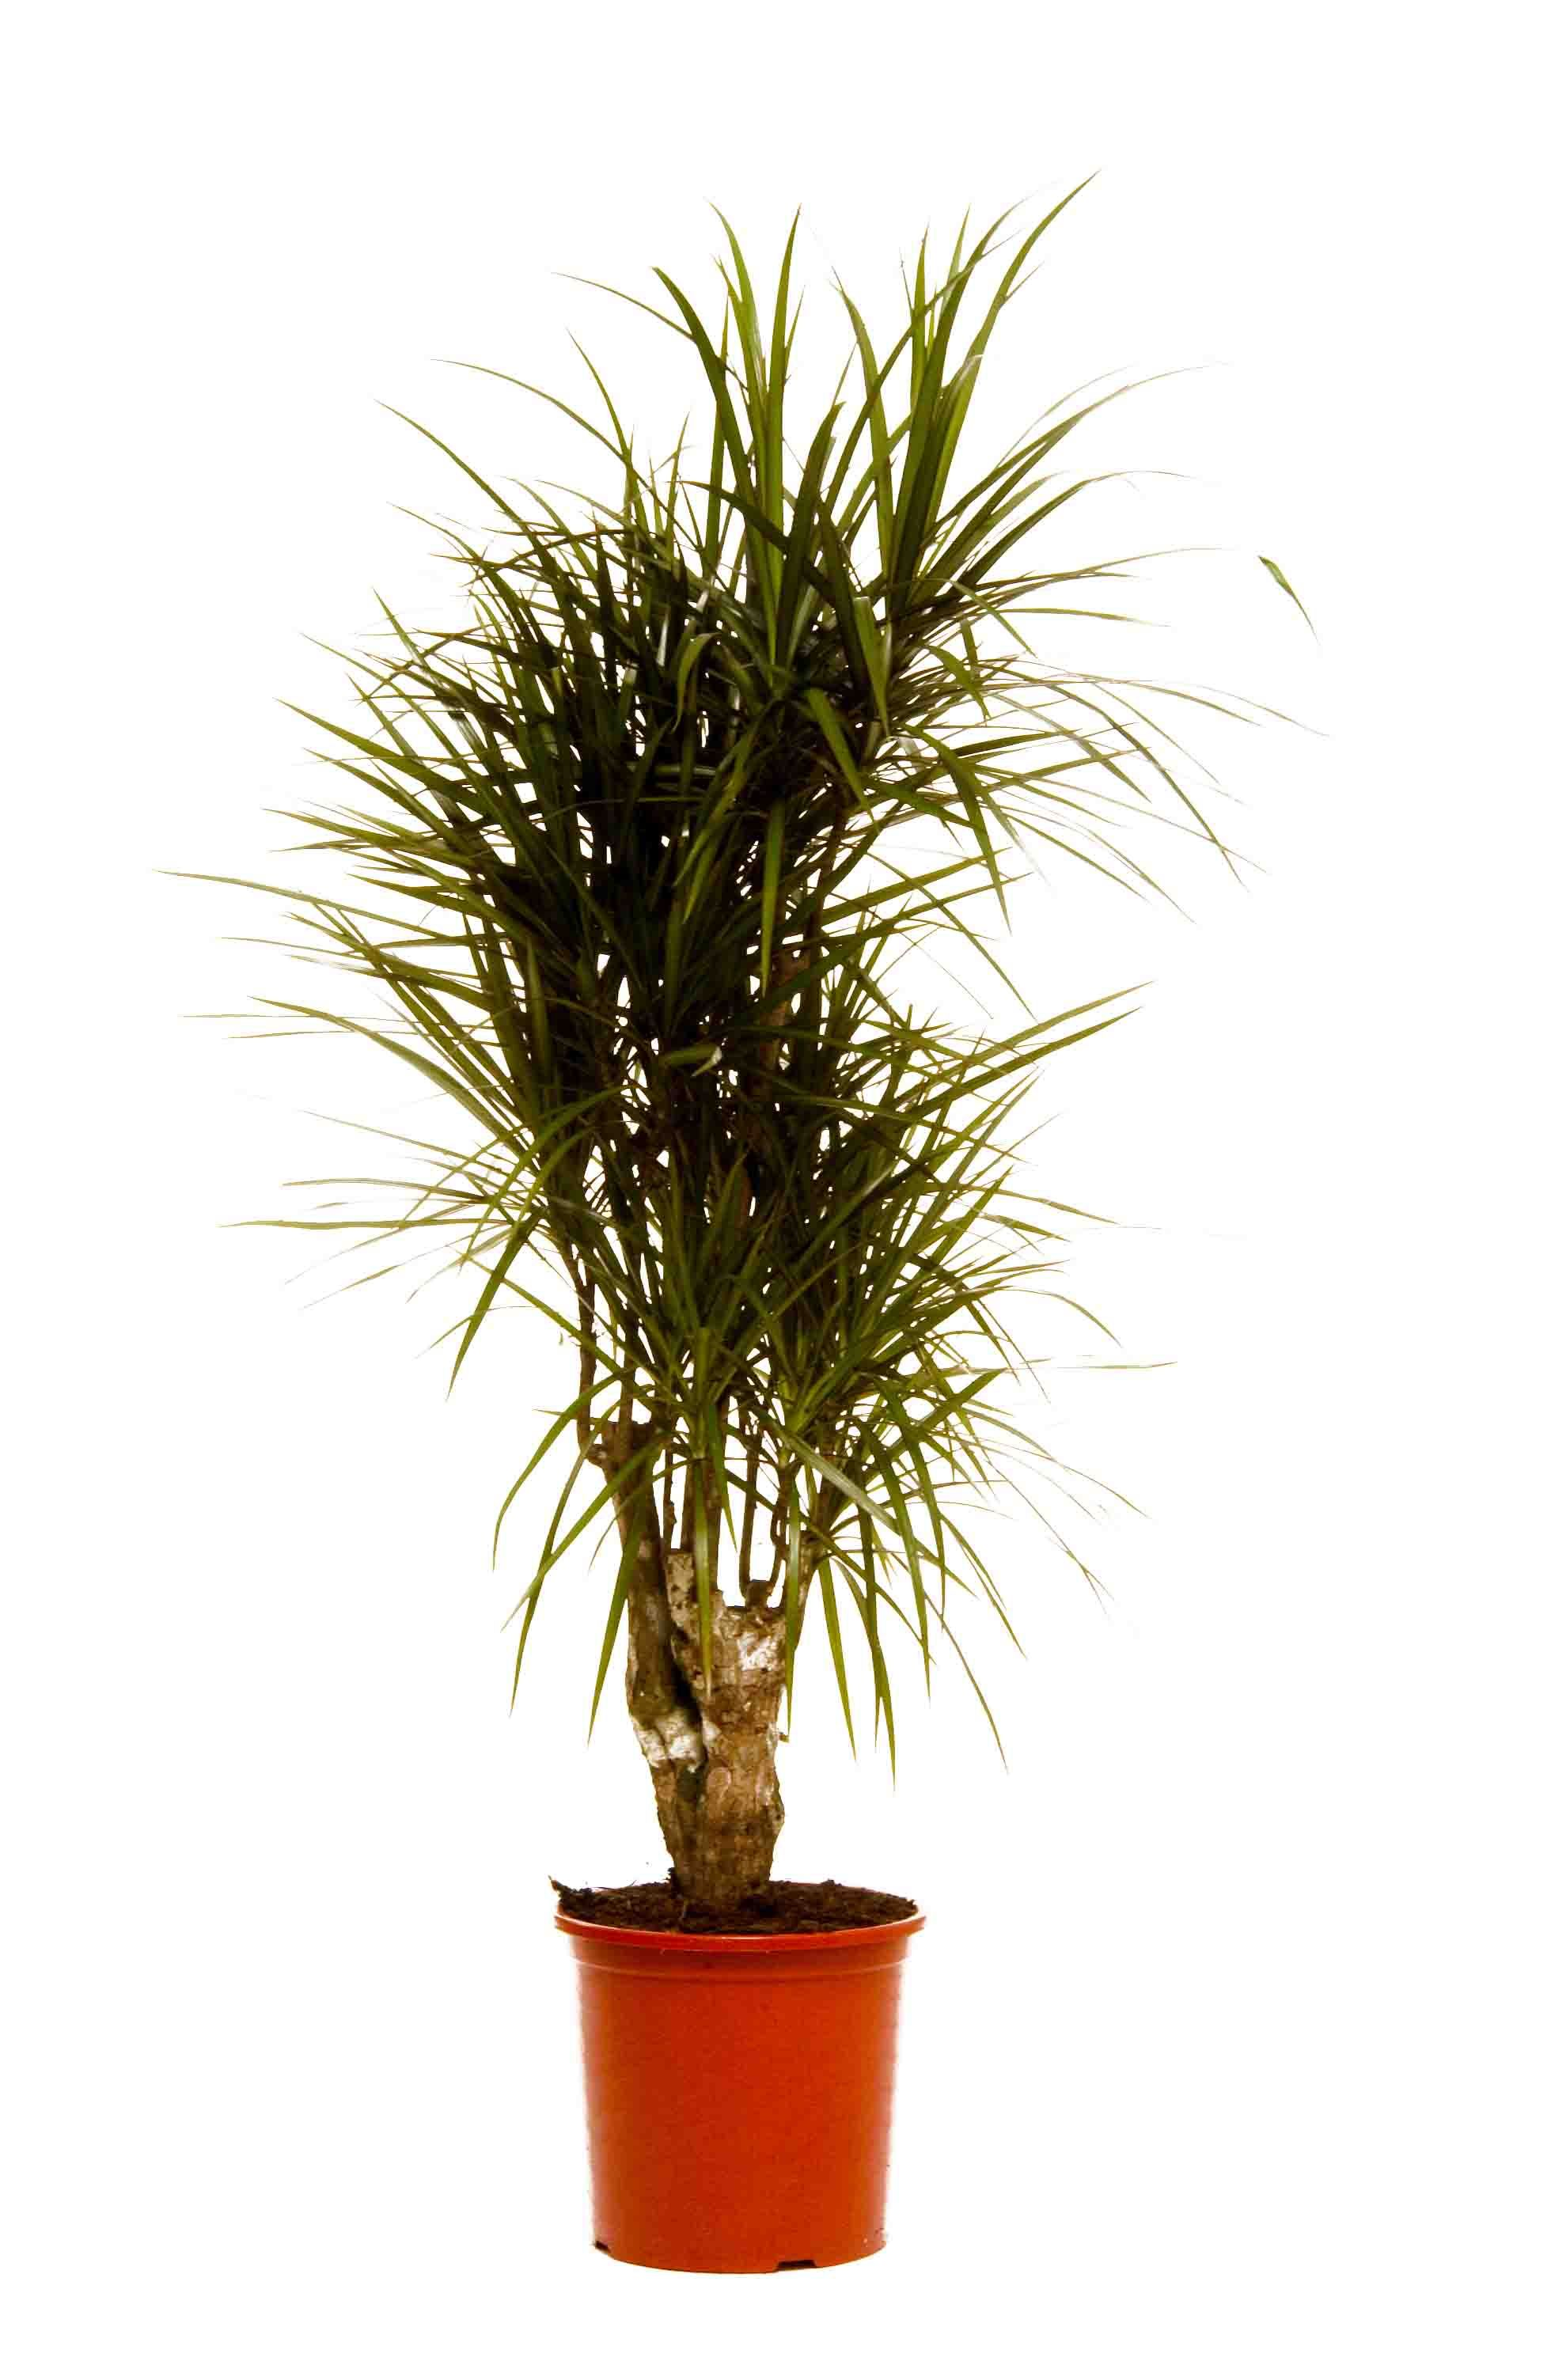 Marginata dracaena - a worthy decoration for home and office 54